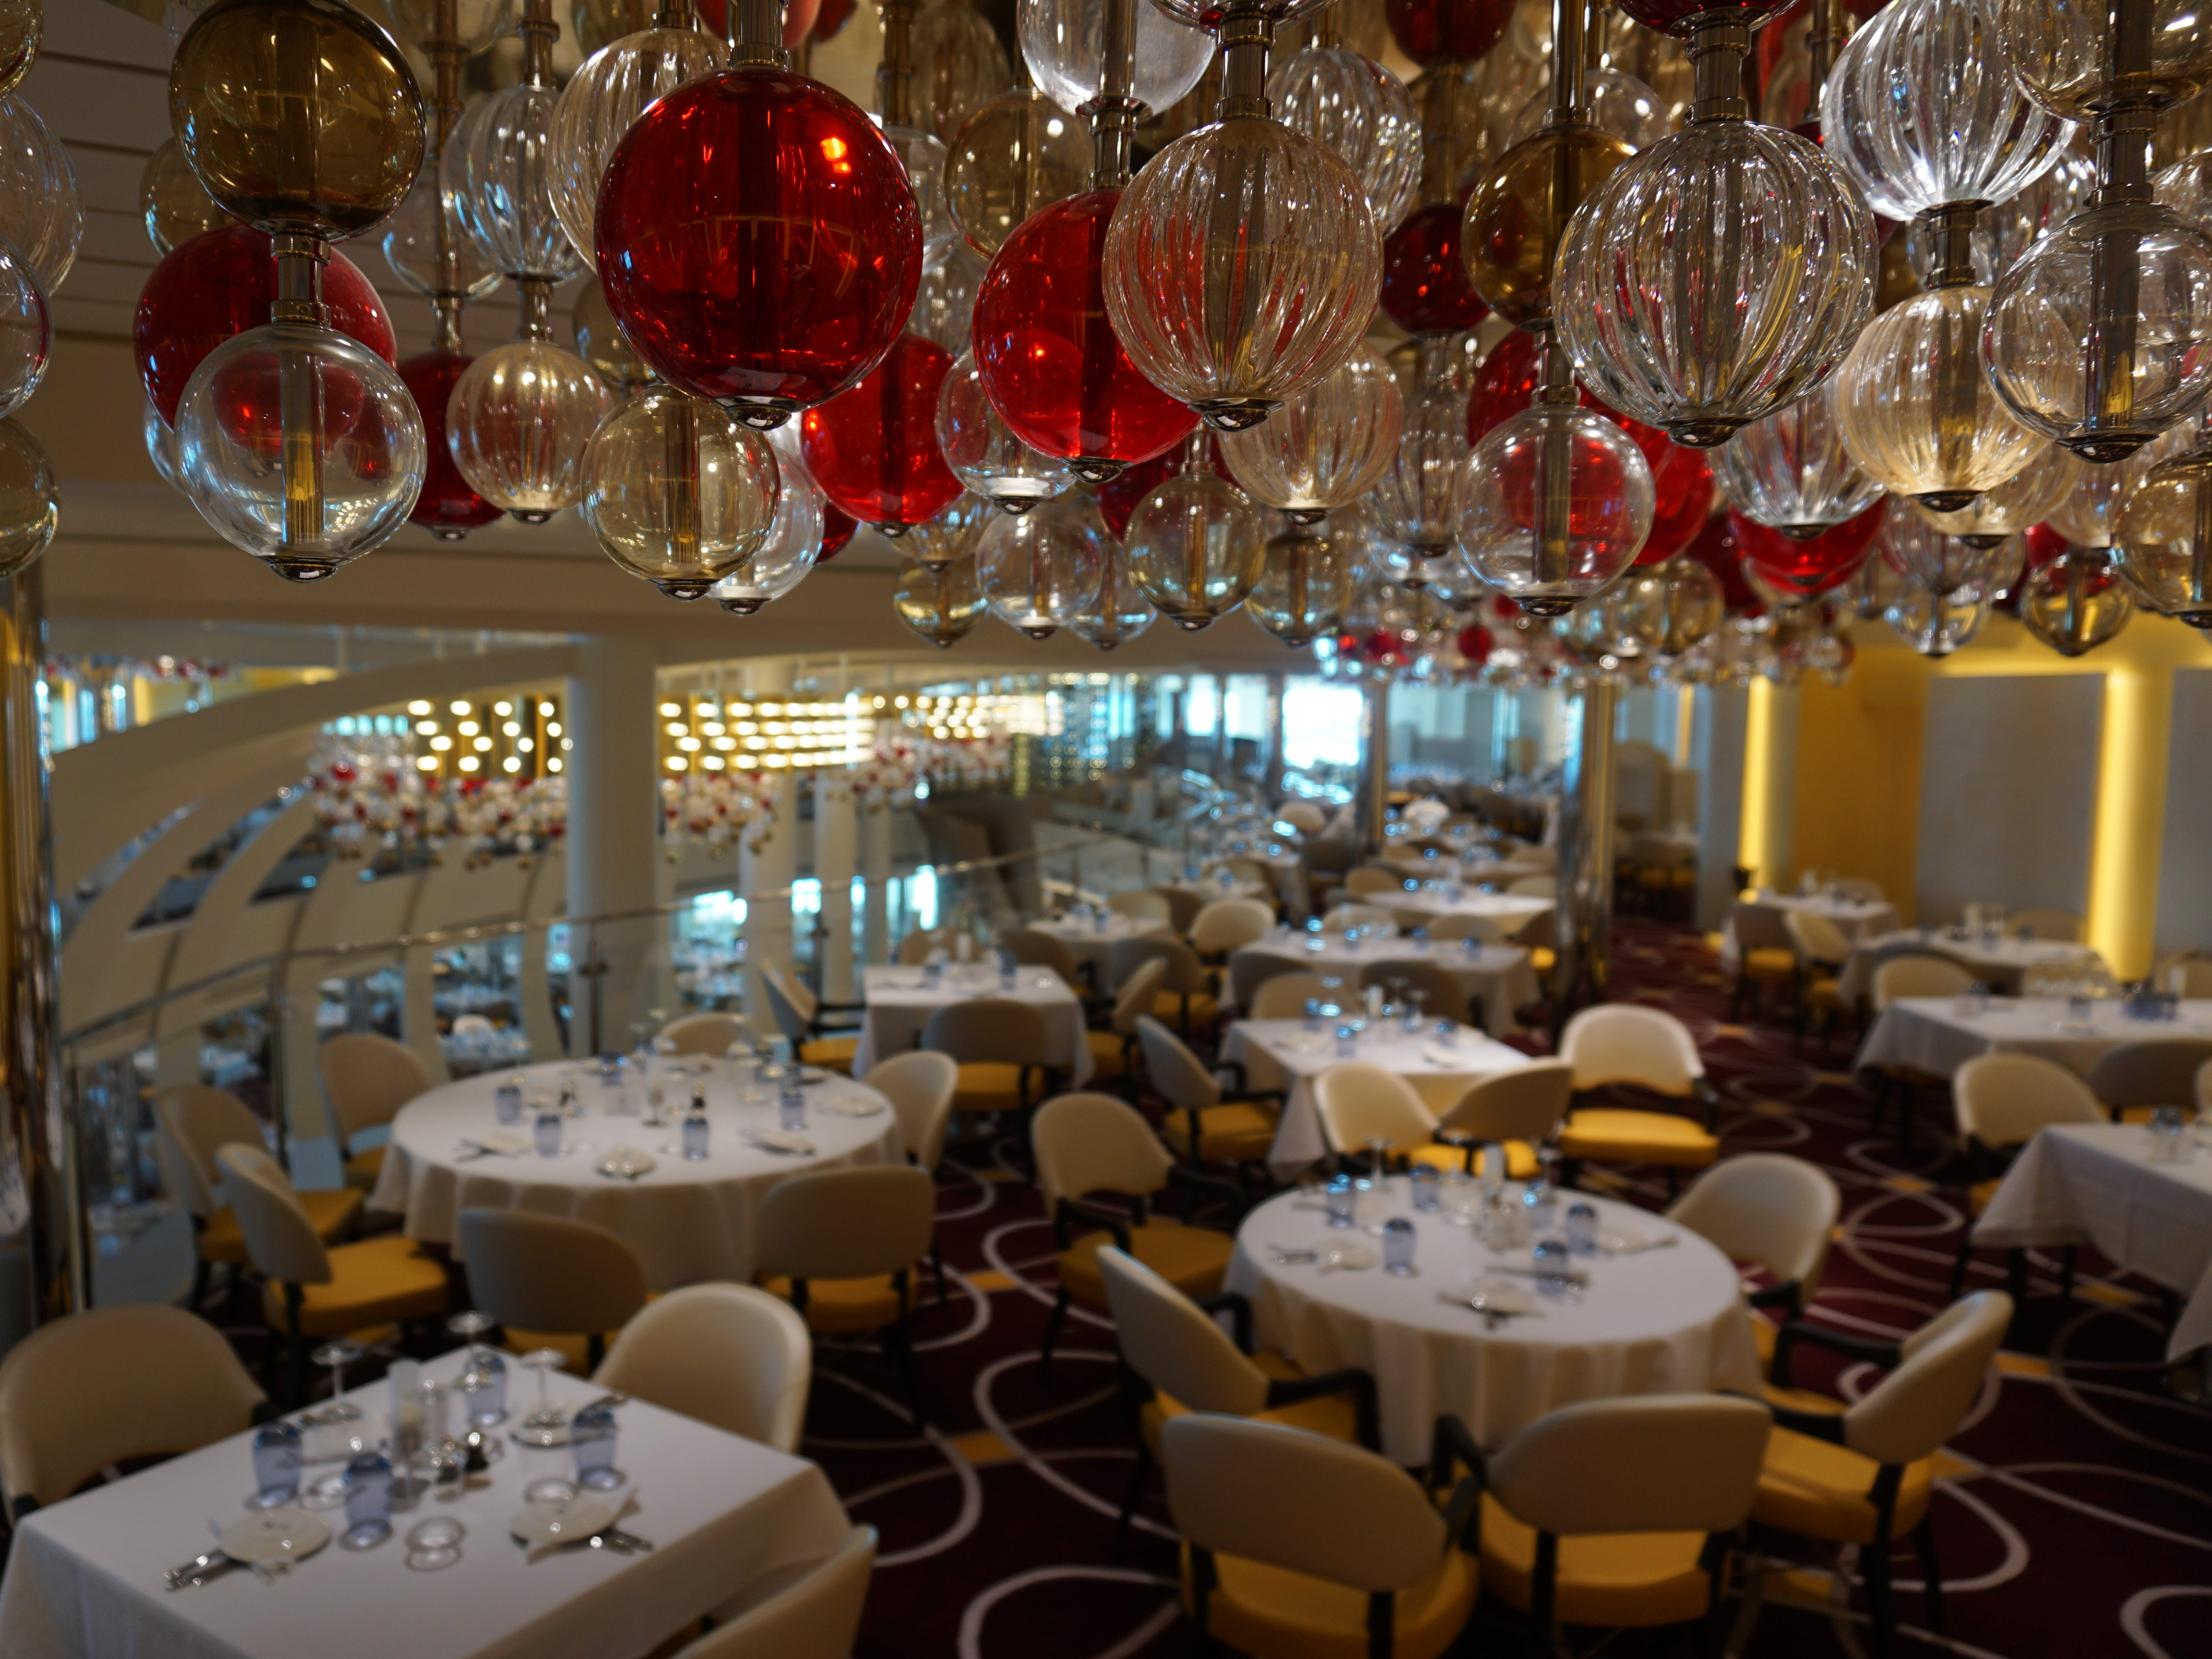 Designed by Adam Tihany, the Dining Room is a double-deck space at the far aft end of Decks 3 and 2.  Hand-blown red, white and gold orbs dangle from its ceiling.